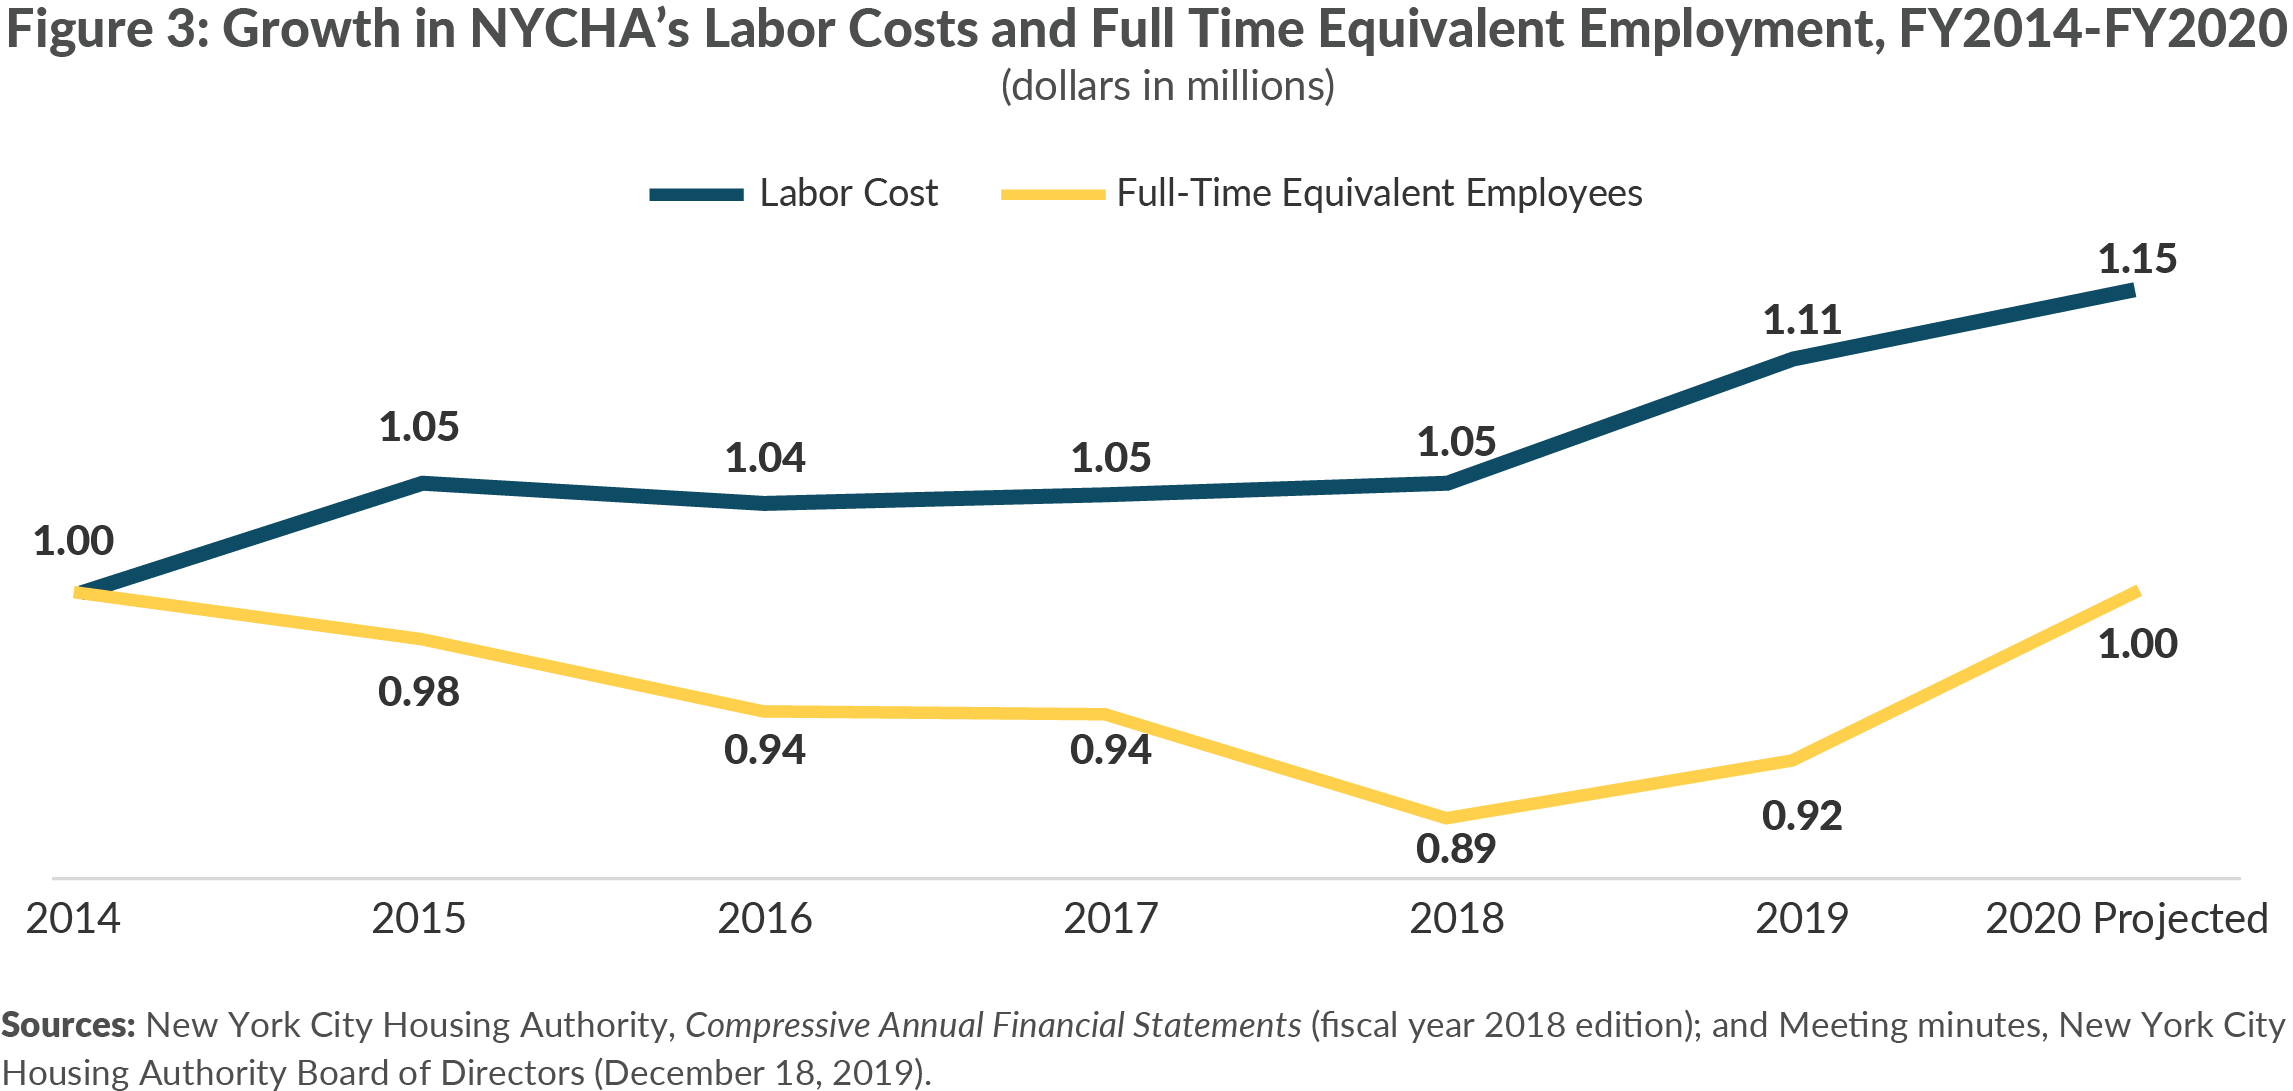 Figure 3: Growth in NYCHA's Labor Costs and Full Time Equivalent Employment, FY2014-FY2020